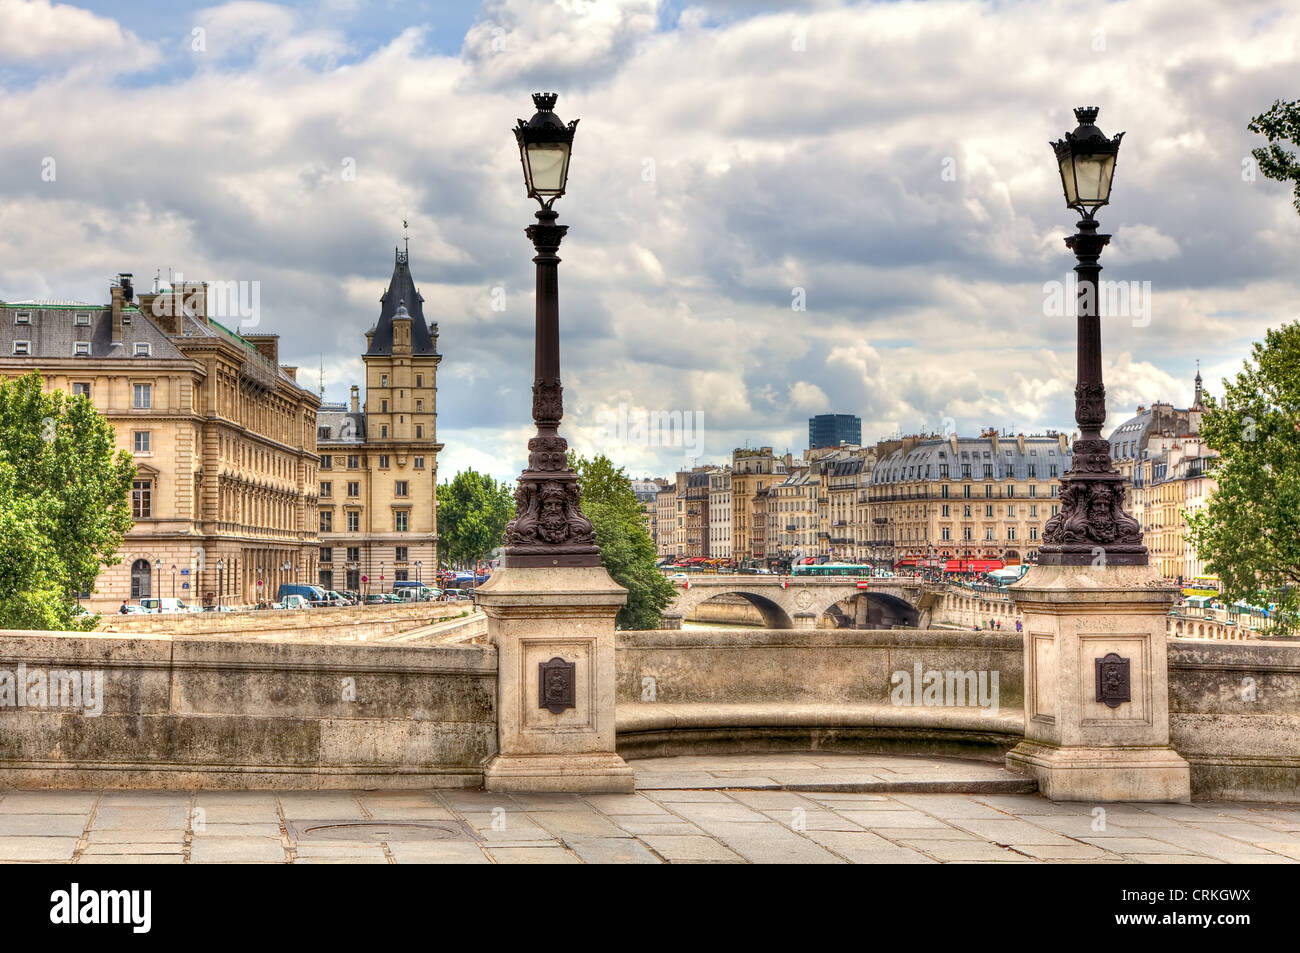 Paris cityscape. View from famous Pont Neuf with traditional lamppost. France. - Stock Image